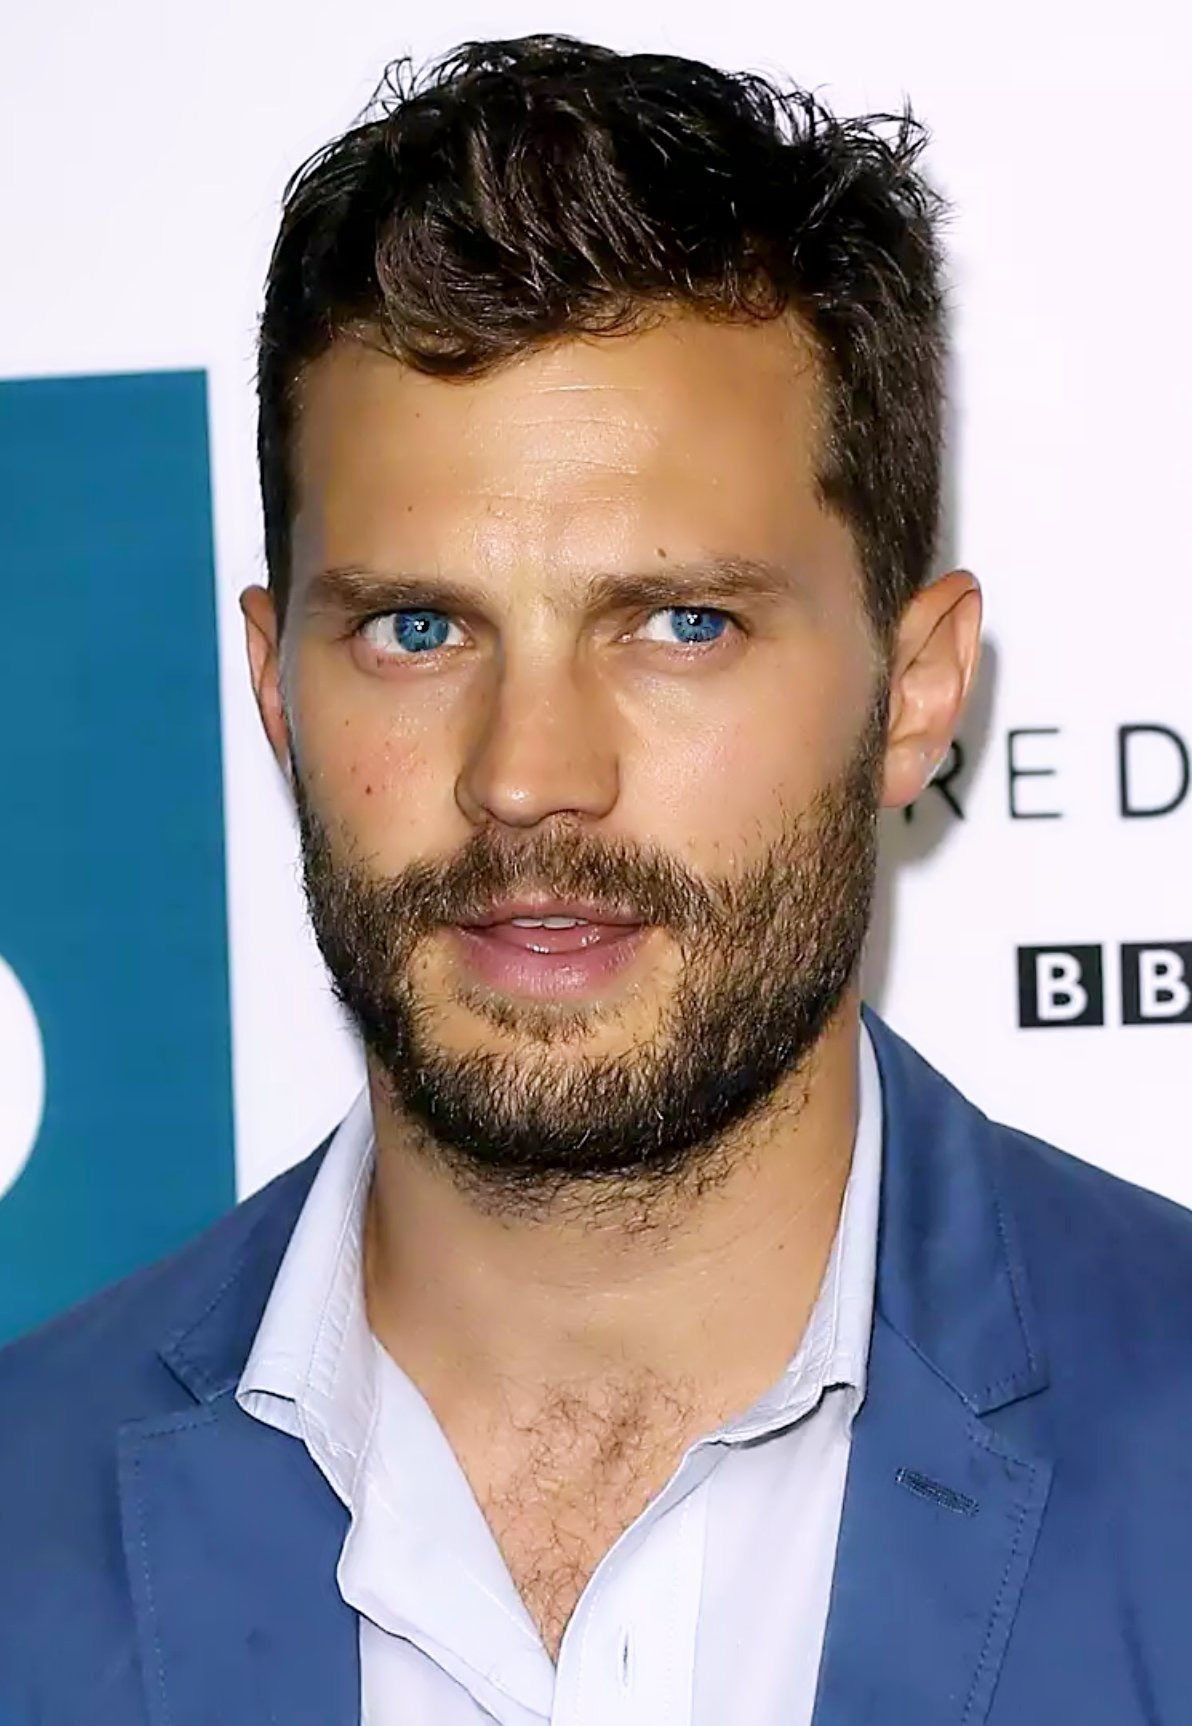 Who is the new actor playing Christian Grey in 50 Shades